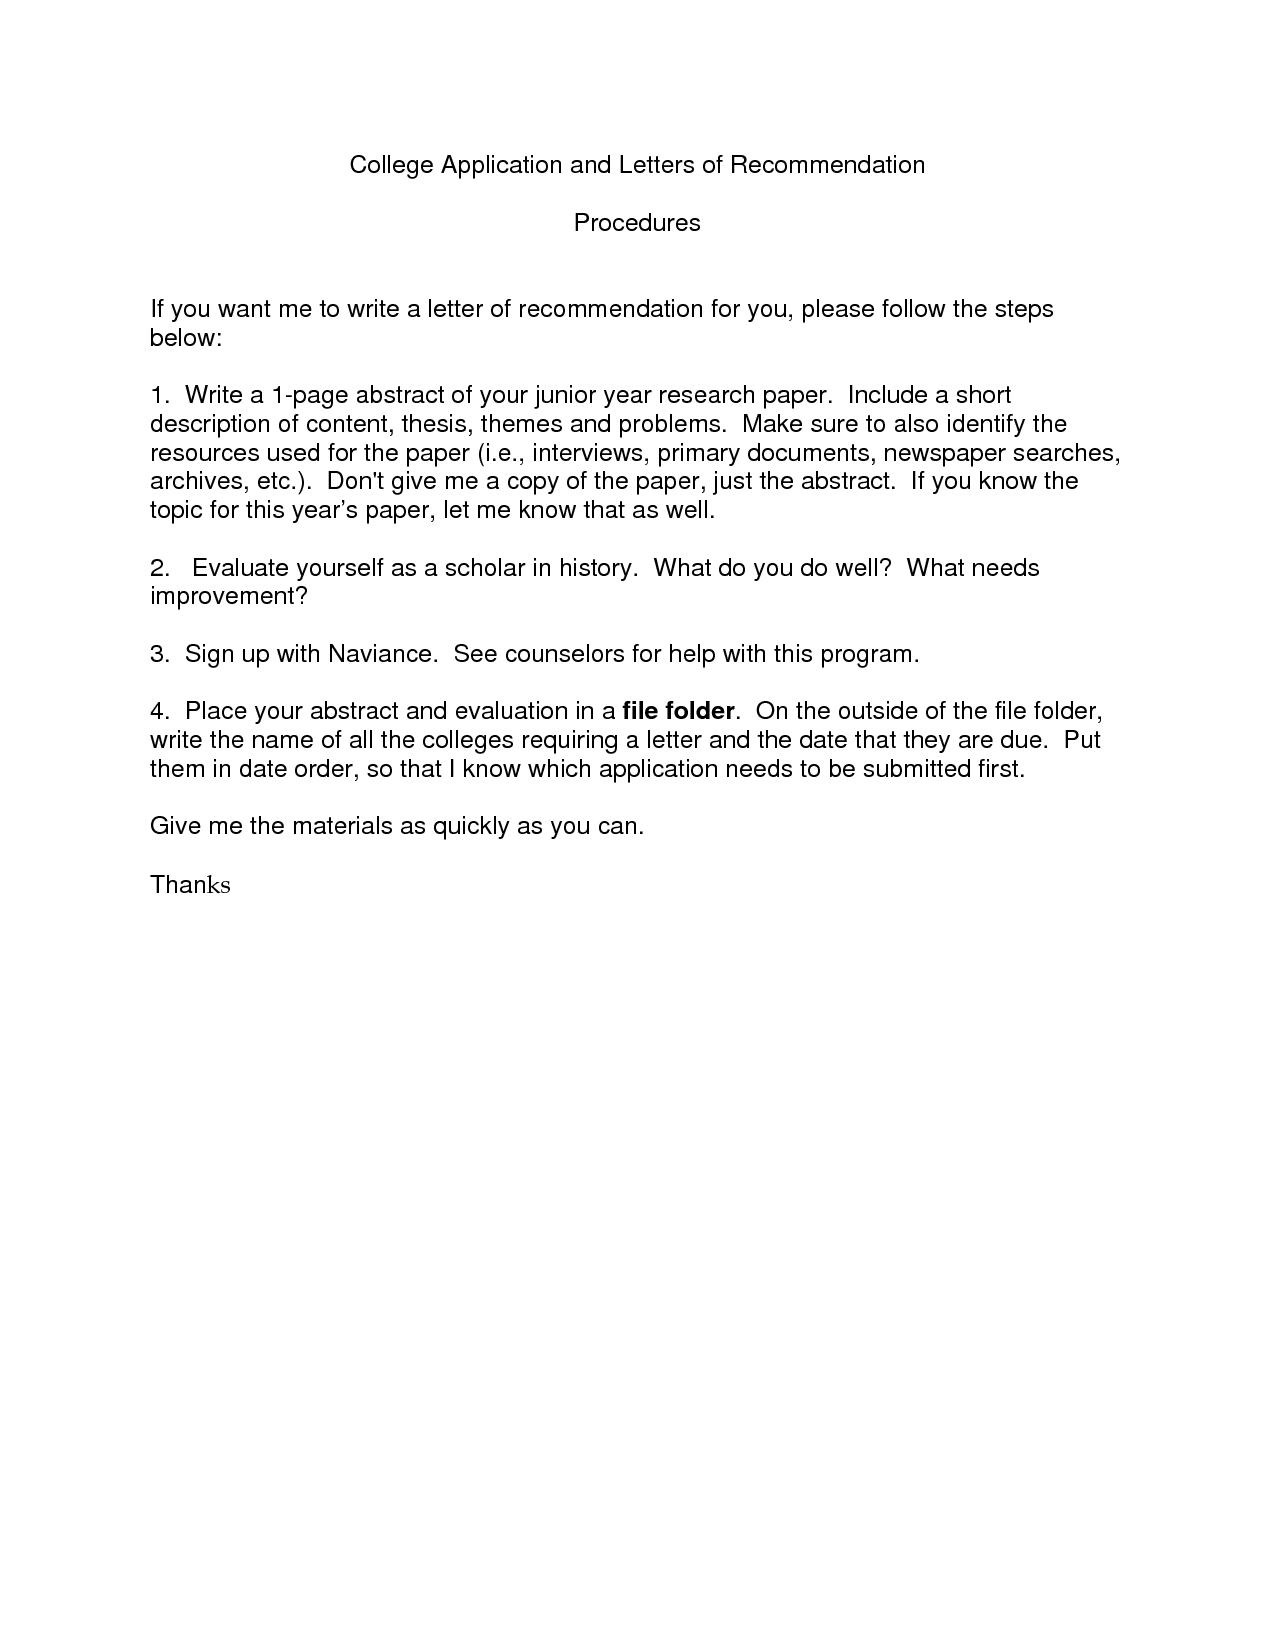 College Letter Of Recommendation Template Templates Free